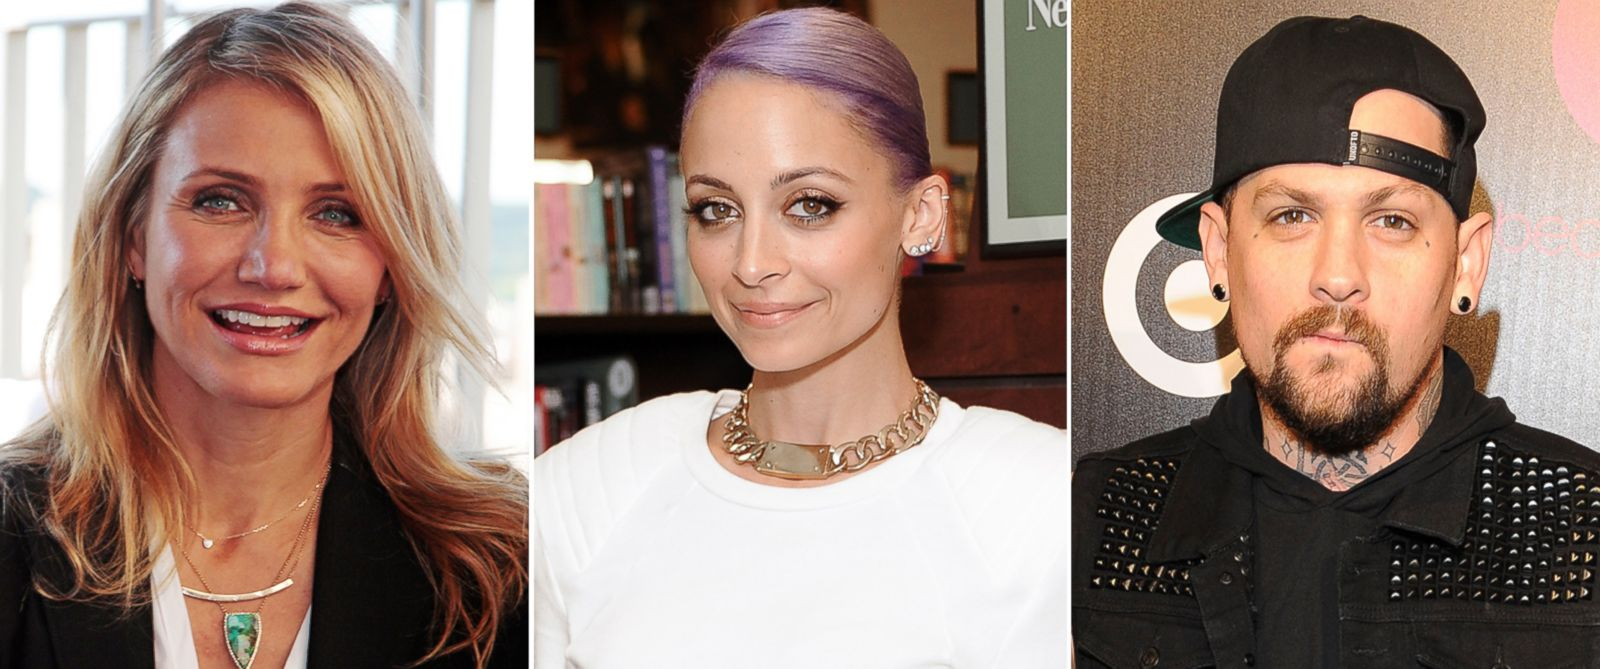 PHOTO: Cameron Diaz, seen left in this June 19, 2014 file photo, Nicole Richie, seen center in this May 12, 2014 file photo, and Benji Madden, seen right in this Jan. 24, 2014 file photo.